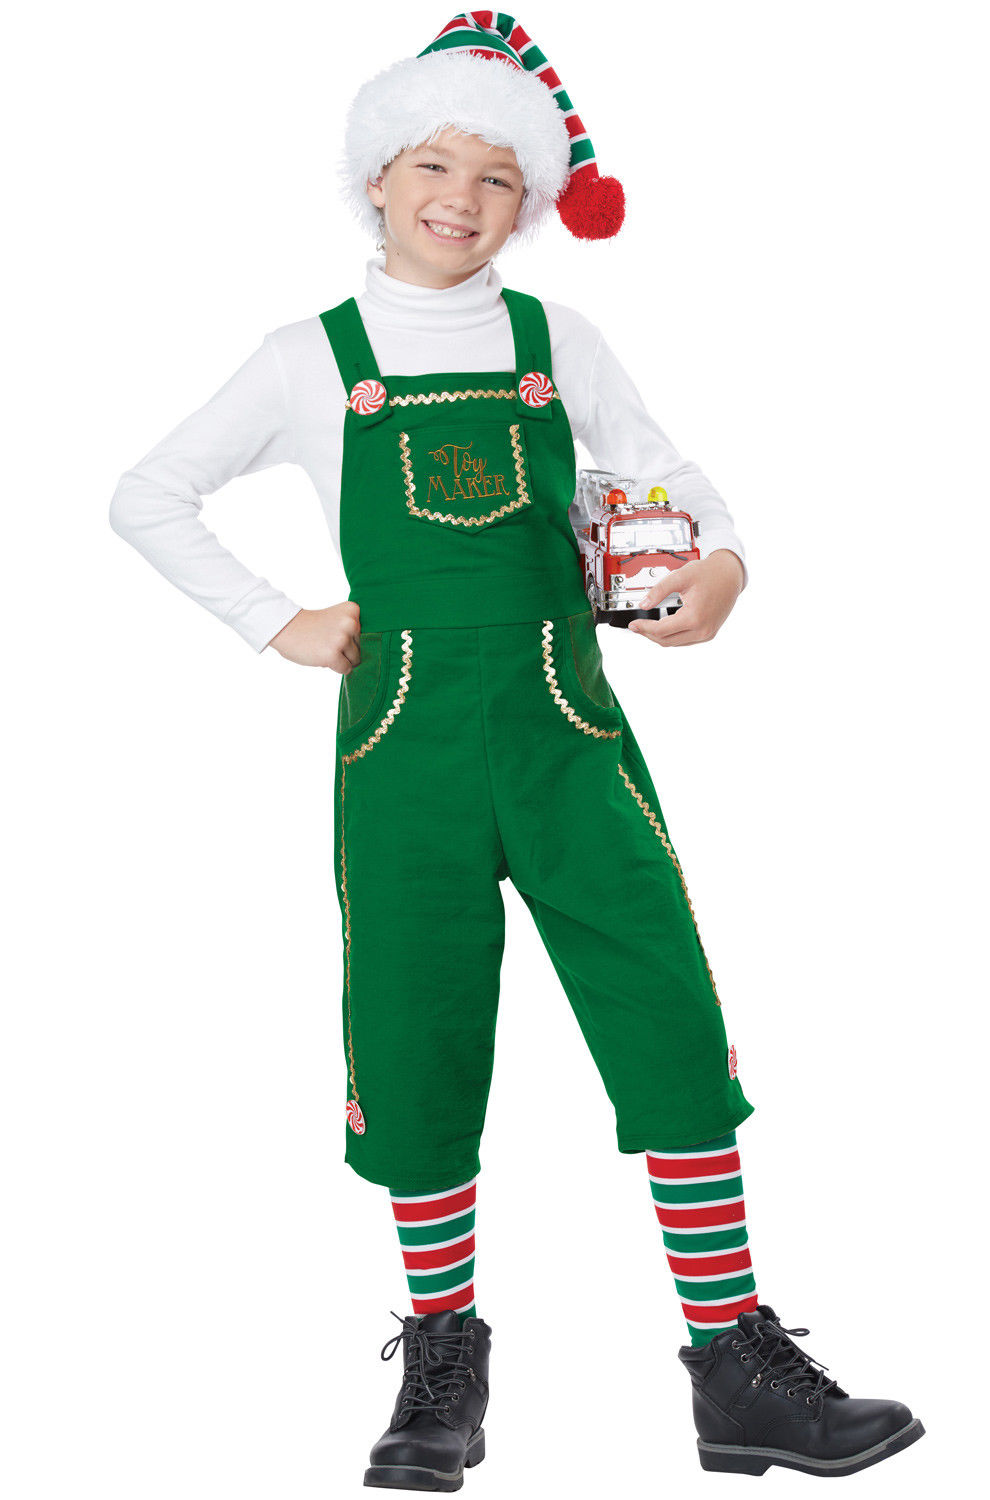 95b756a538d8 Cute Toymaker Elf Santa s Helper Boys Childrens Christmas Holiday ...